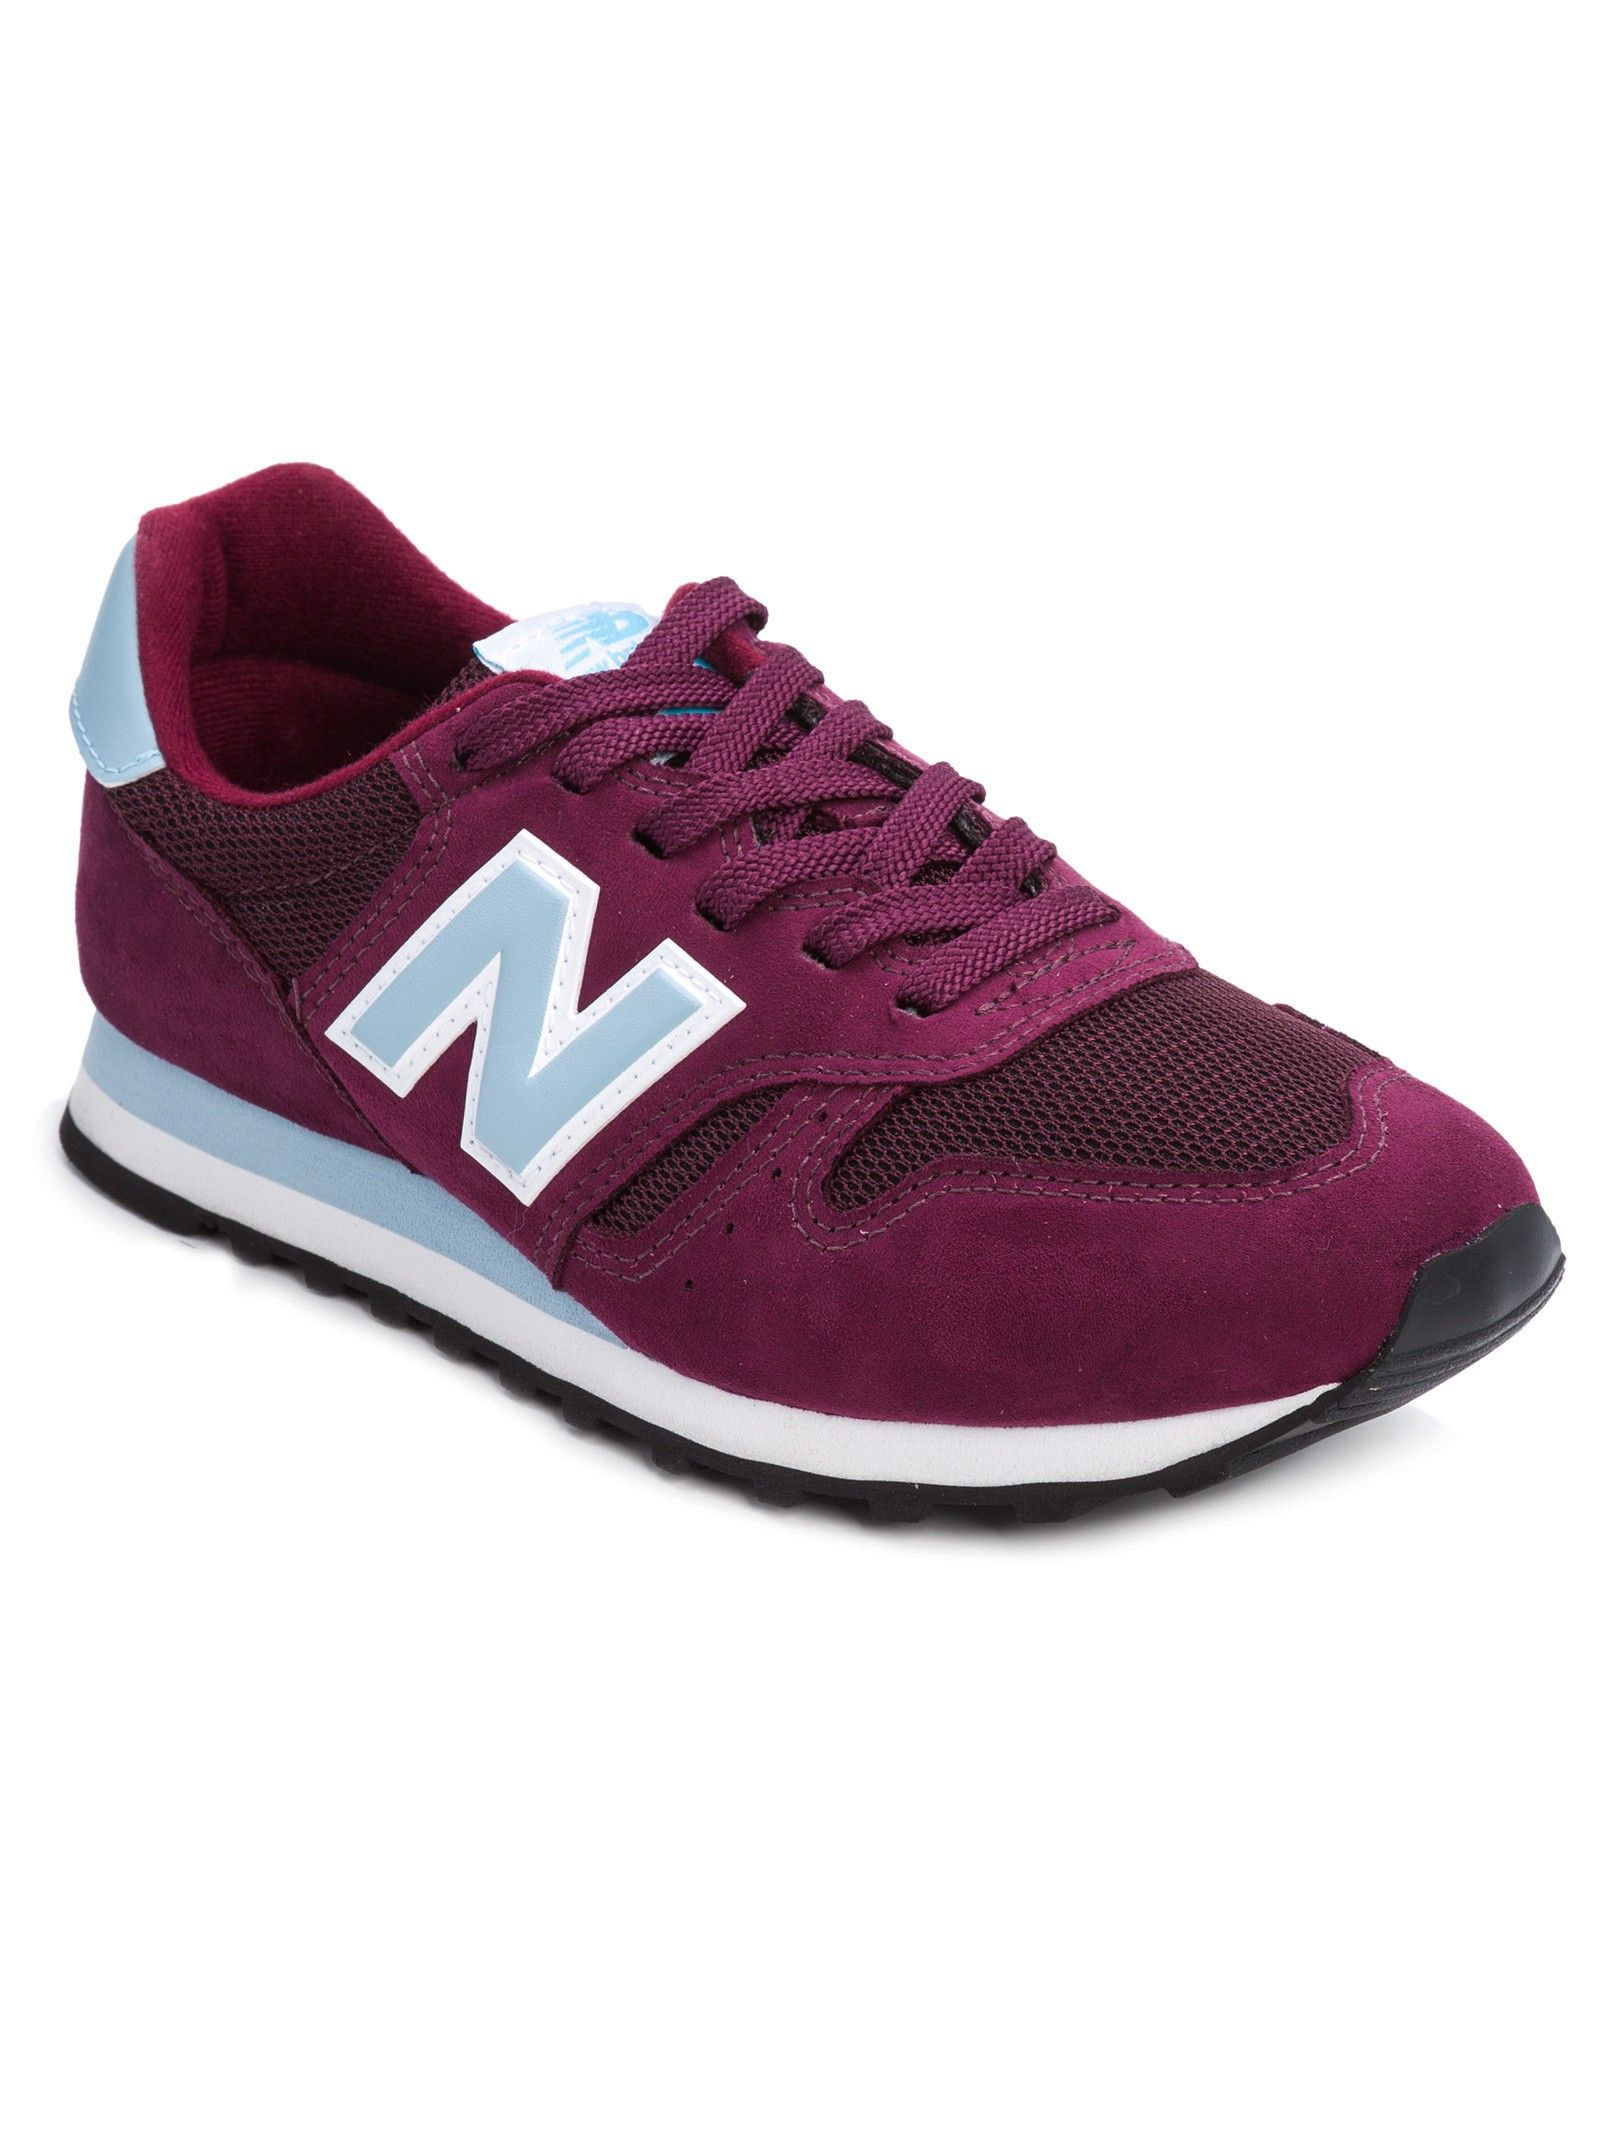 6b2b4b781d4 Shop2gether - Tênis Feminino M574bb36 - New Balance - Roxo ...